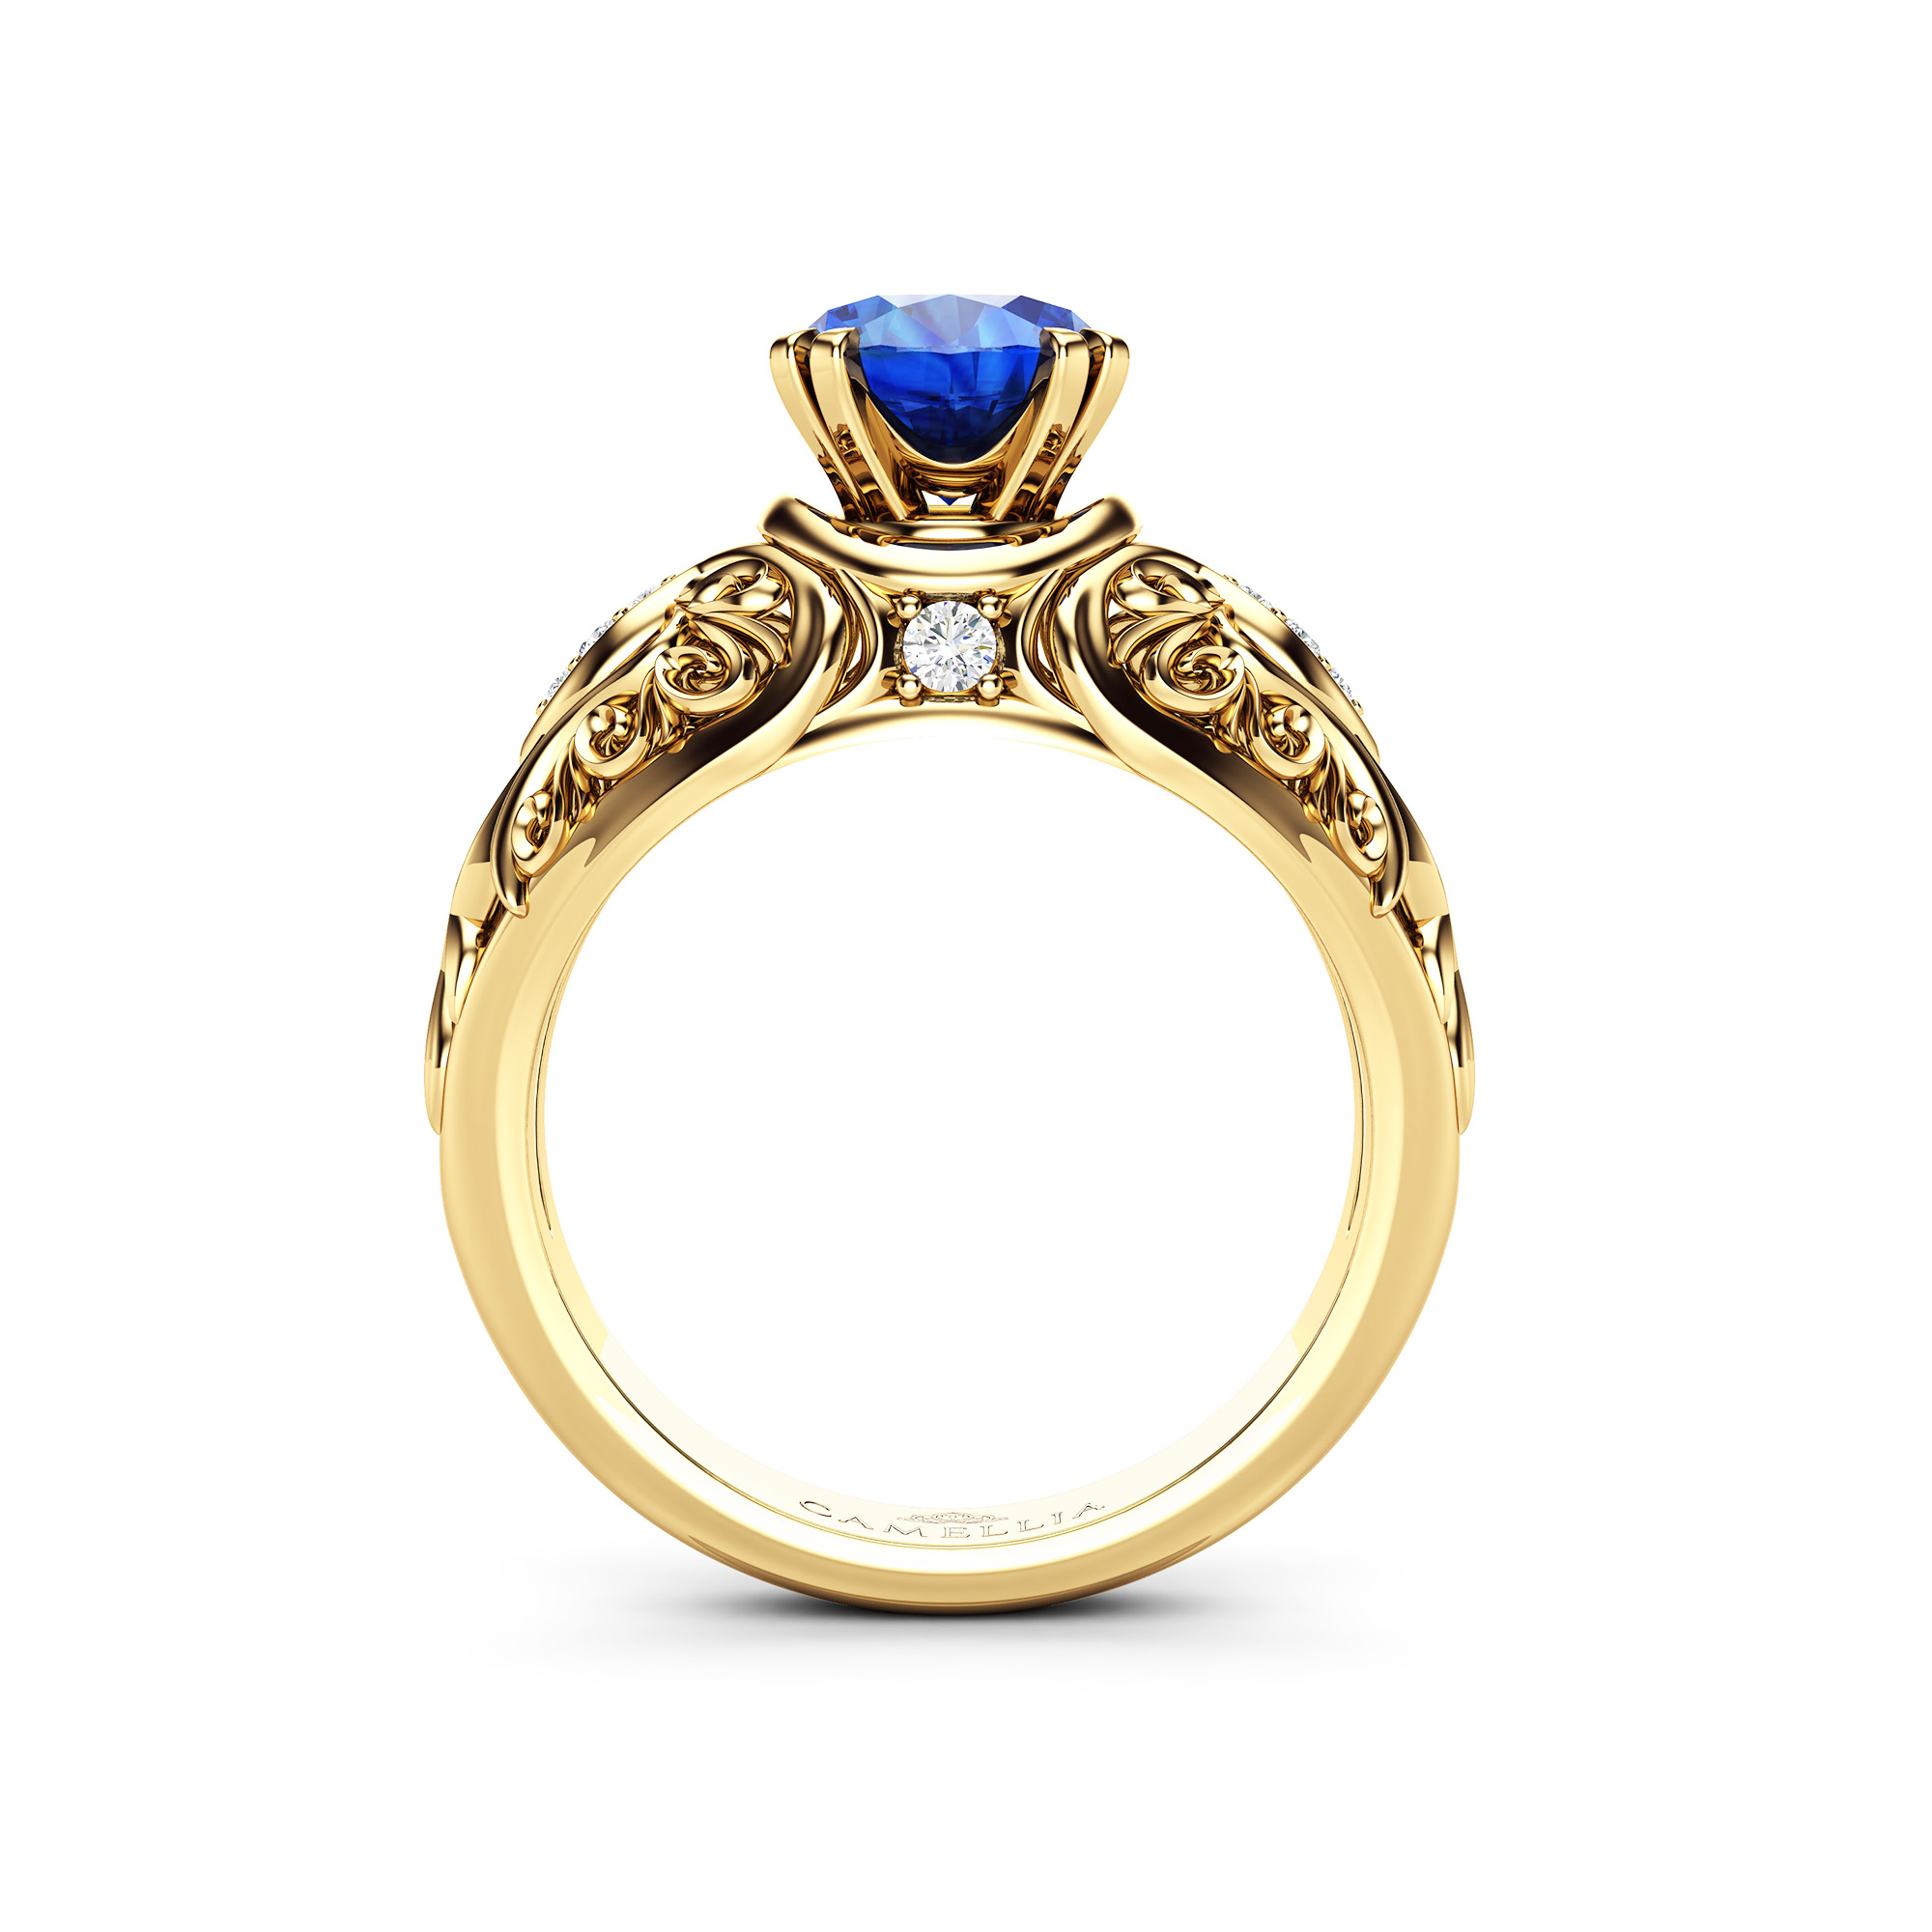 Art Nouveau Styled Blue Sapphire Ring 14K Yellow Gold Engagement Ring Sapphire Ring Unique Alternative Engagement Ring